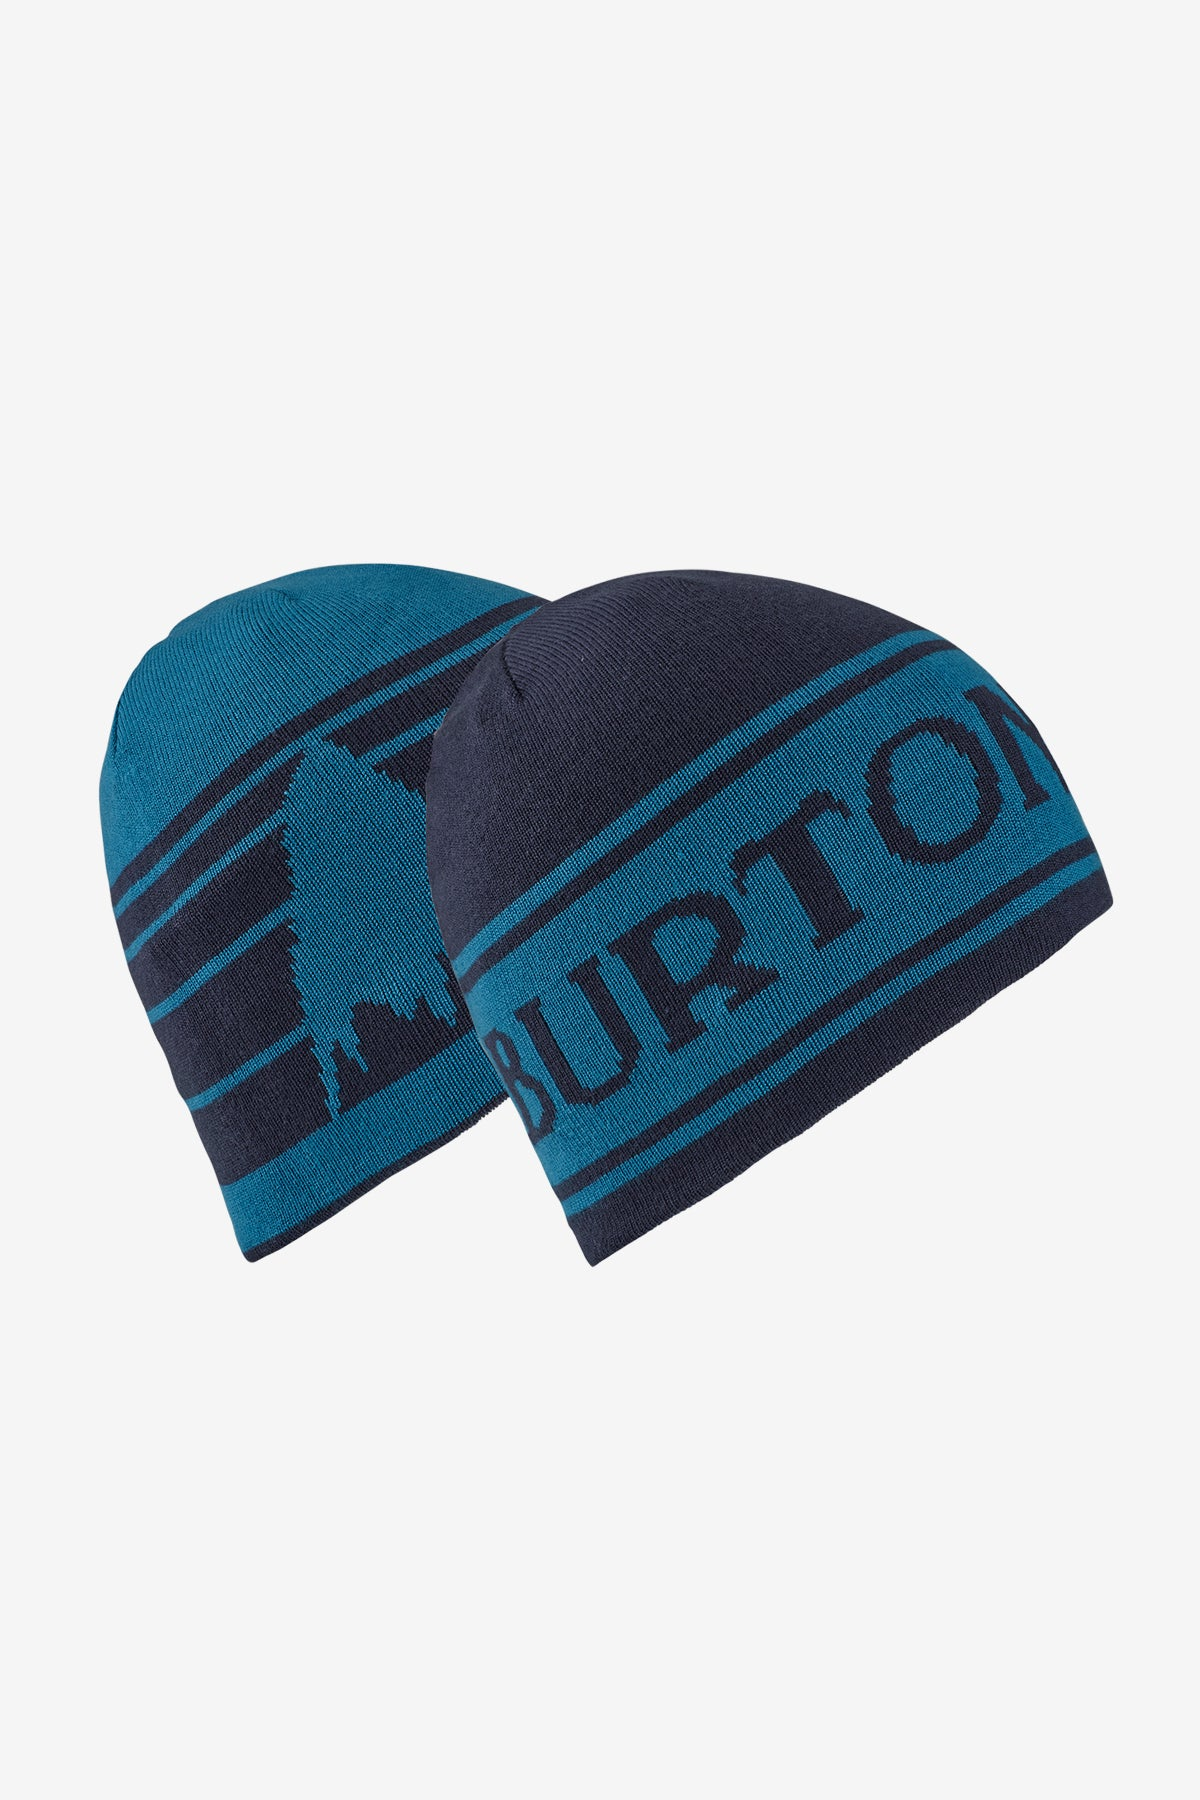 ae20316bd0b Burton Youth Billboard Beanie - Indigo - Mini Ruby